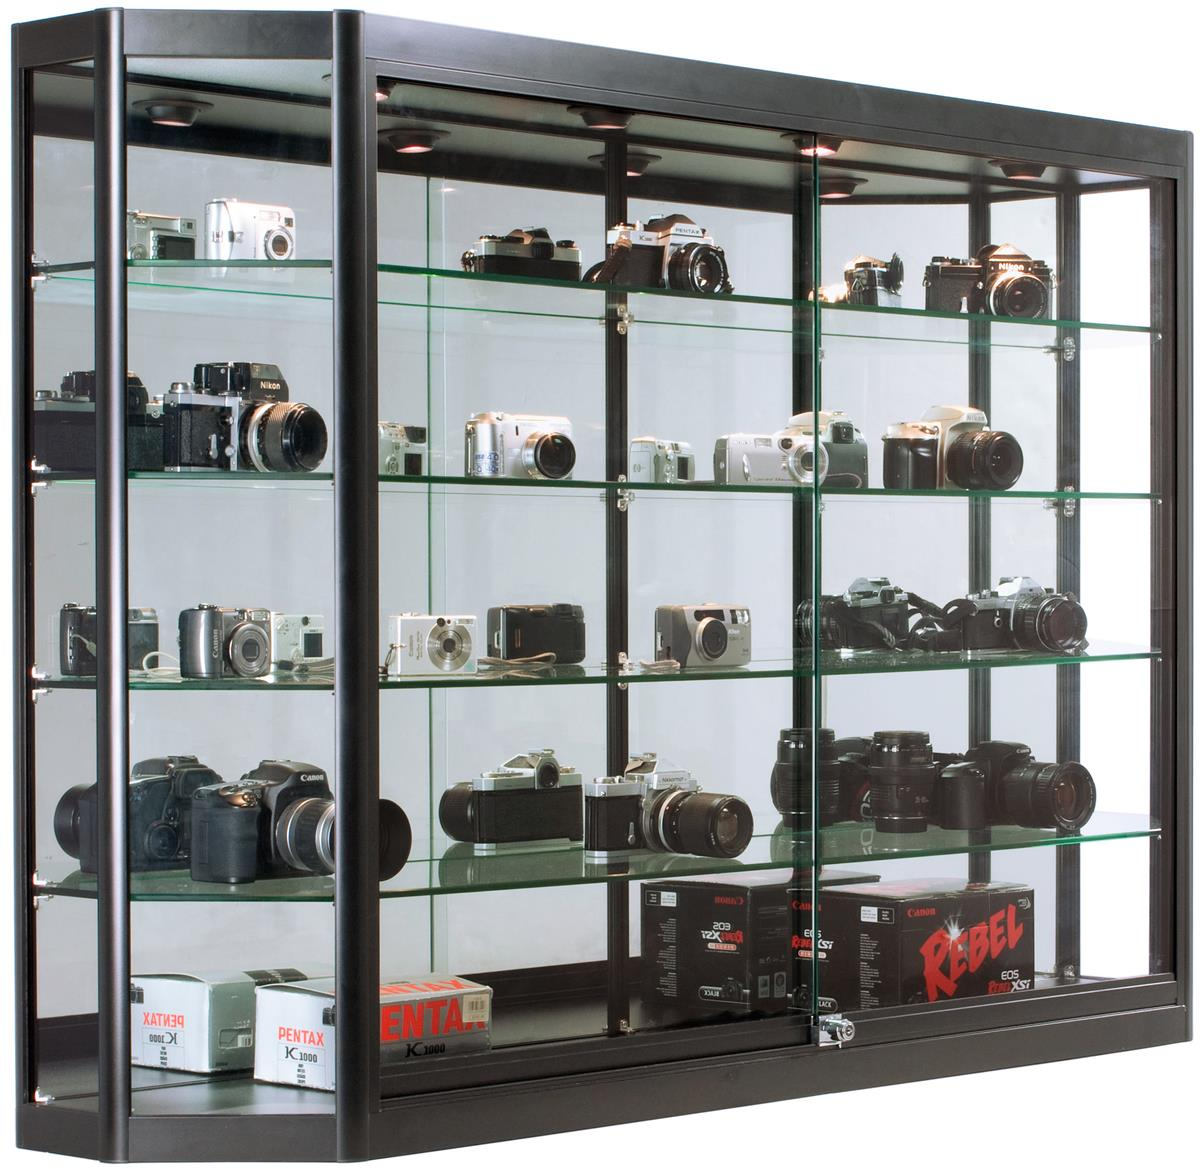 Wall Mounted Display Case 5x3 Led Wall Mounted Display Case W Mirror Back Sliding Doors Locking Black